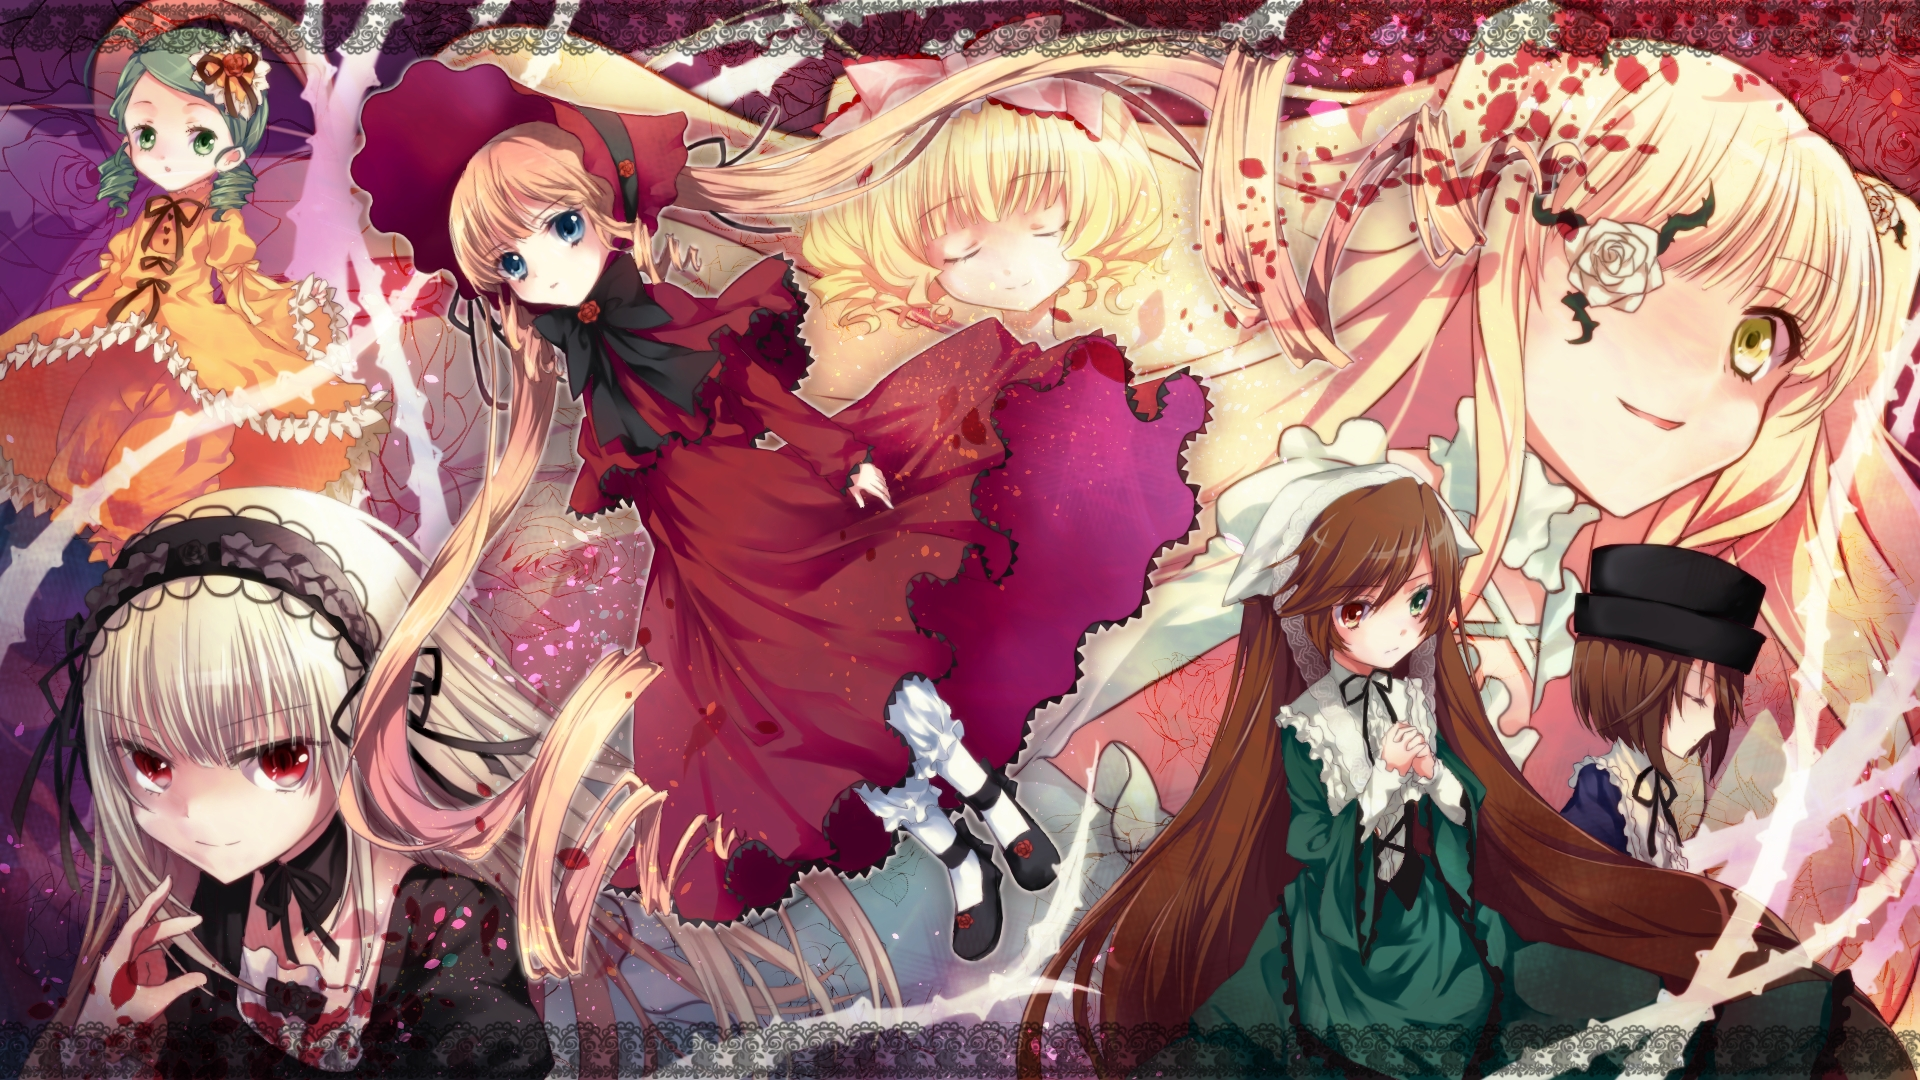 Rozen Maiden Hd Wallpaper Zerochan Anime Image Board